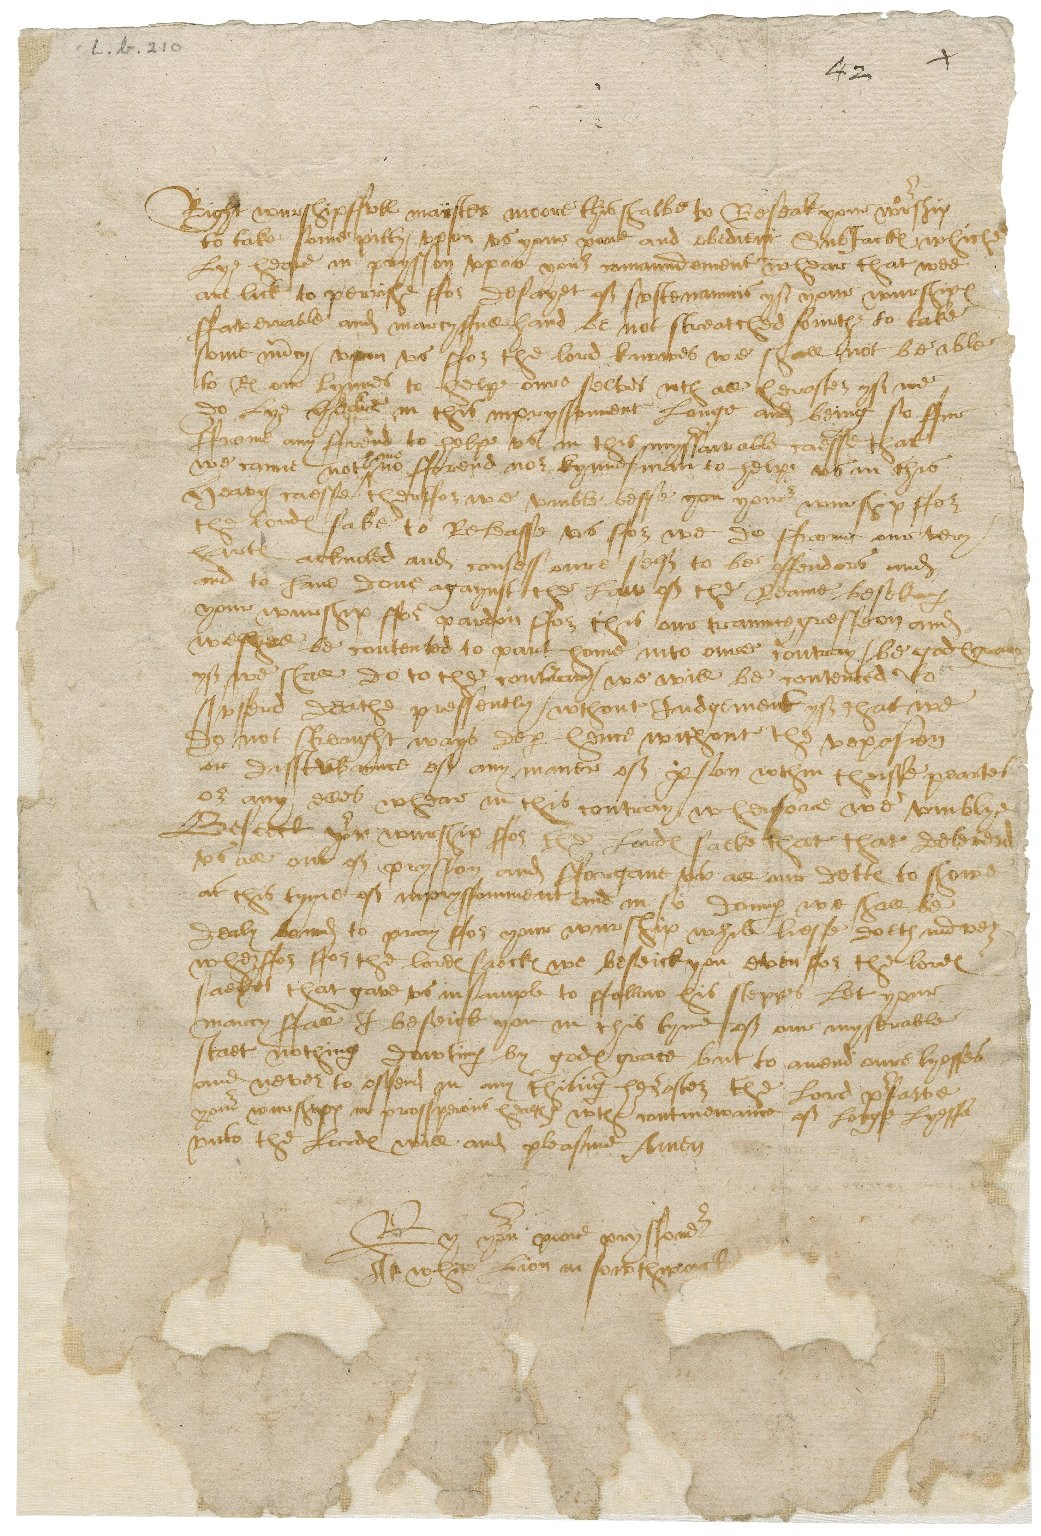 Southwark, England. White lion prison. Prisoners. A petition. To Sir William More at Loseley. White lion prison, Southwark.